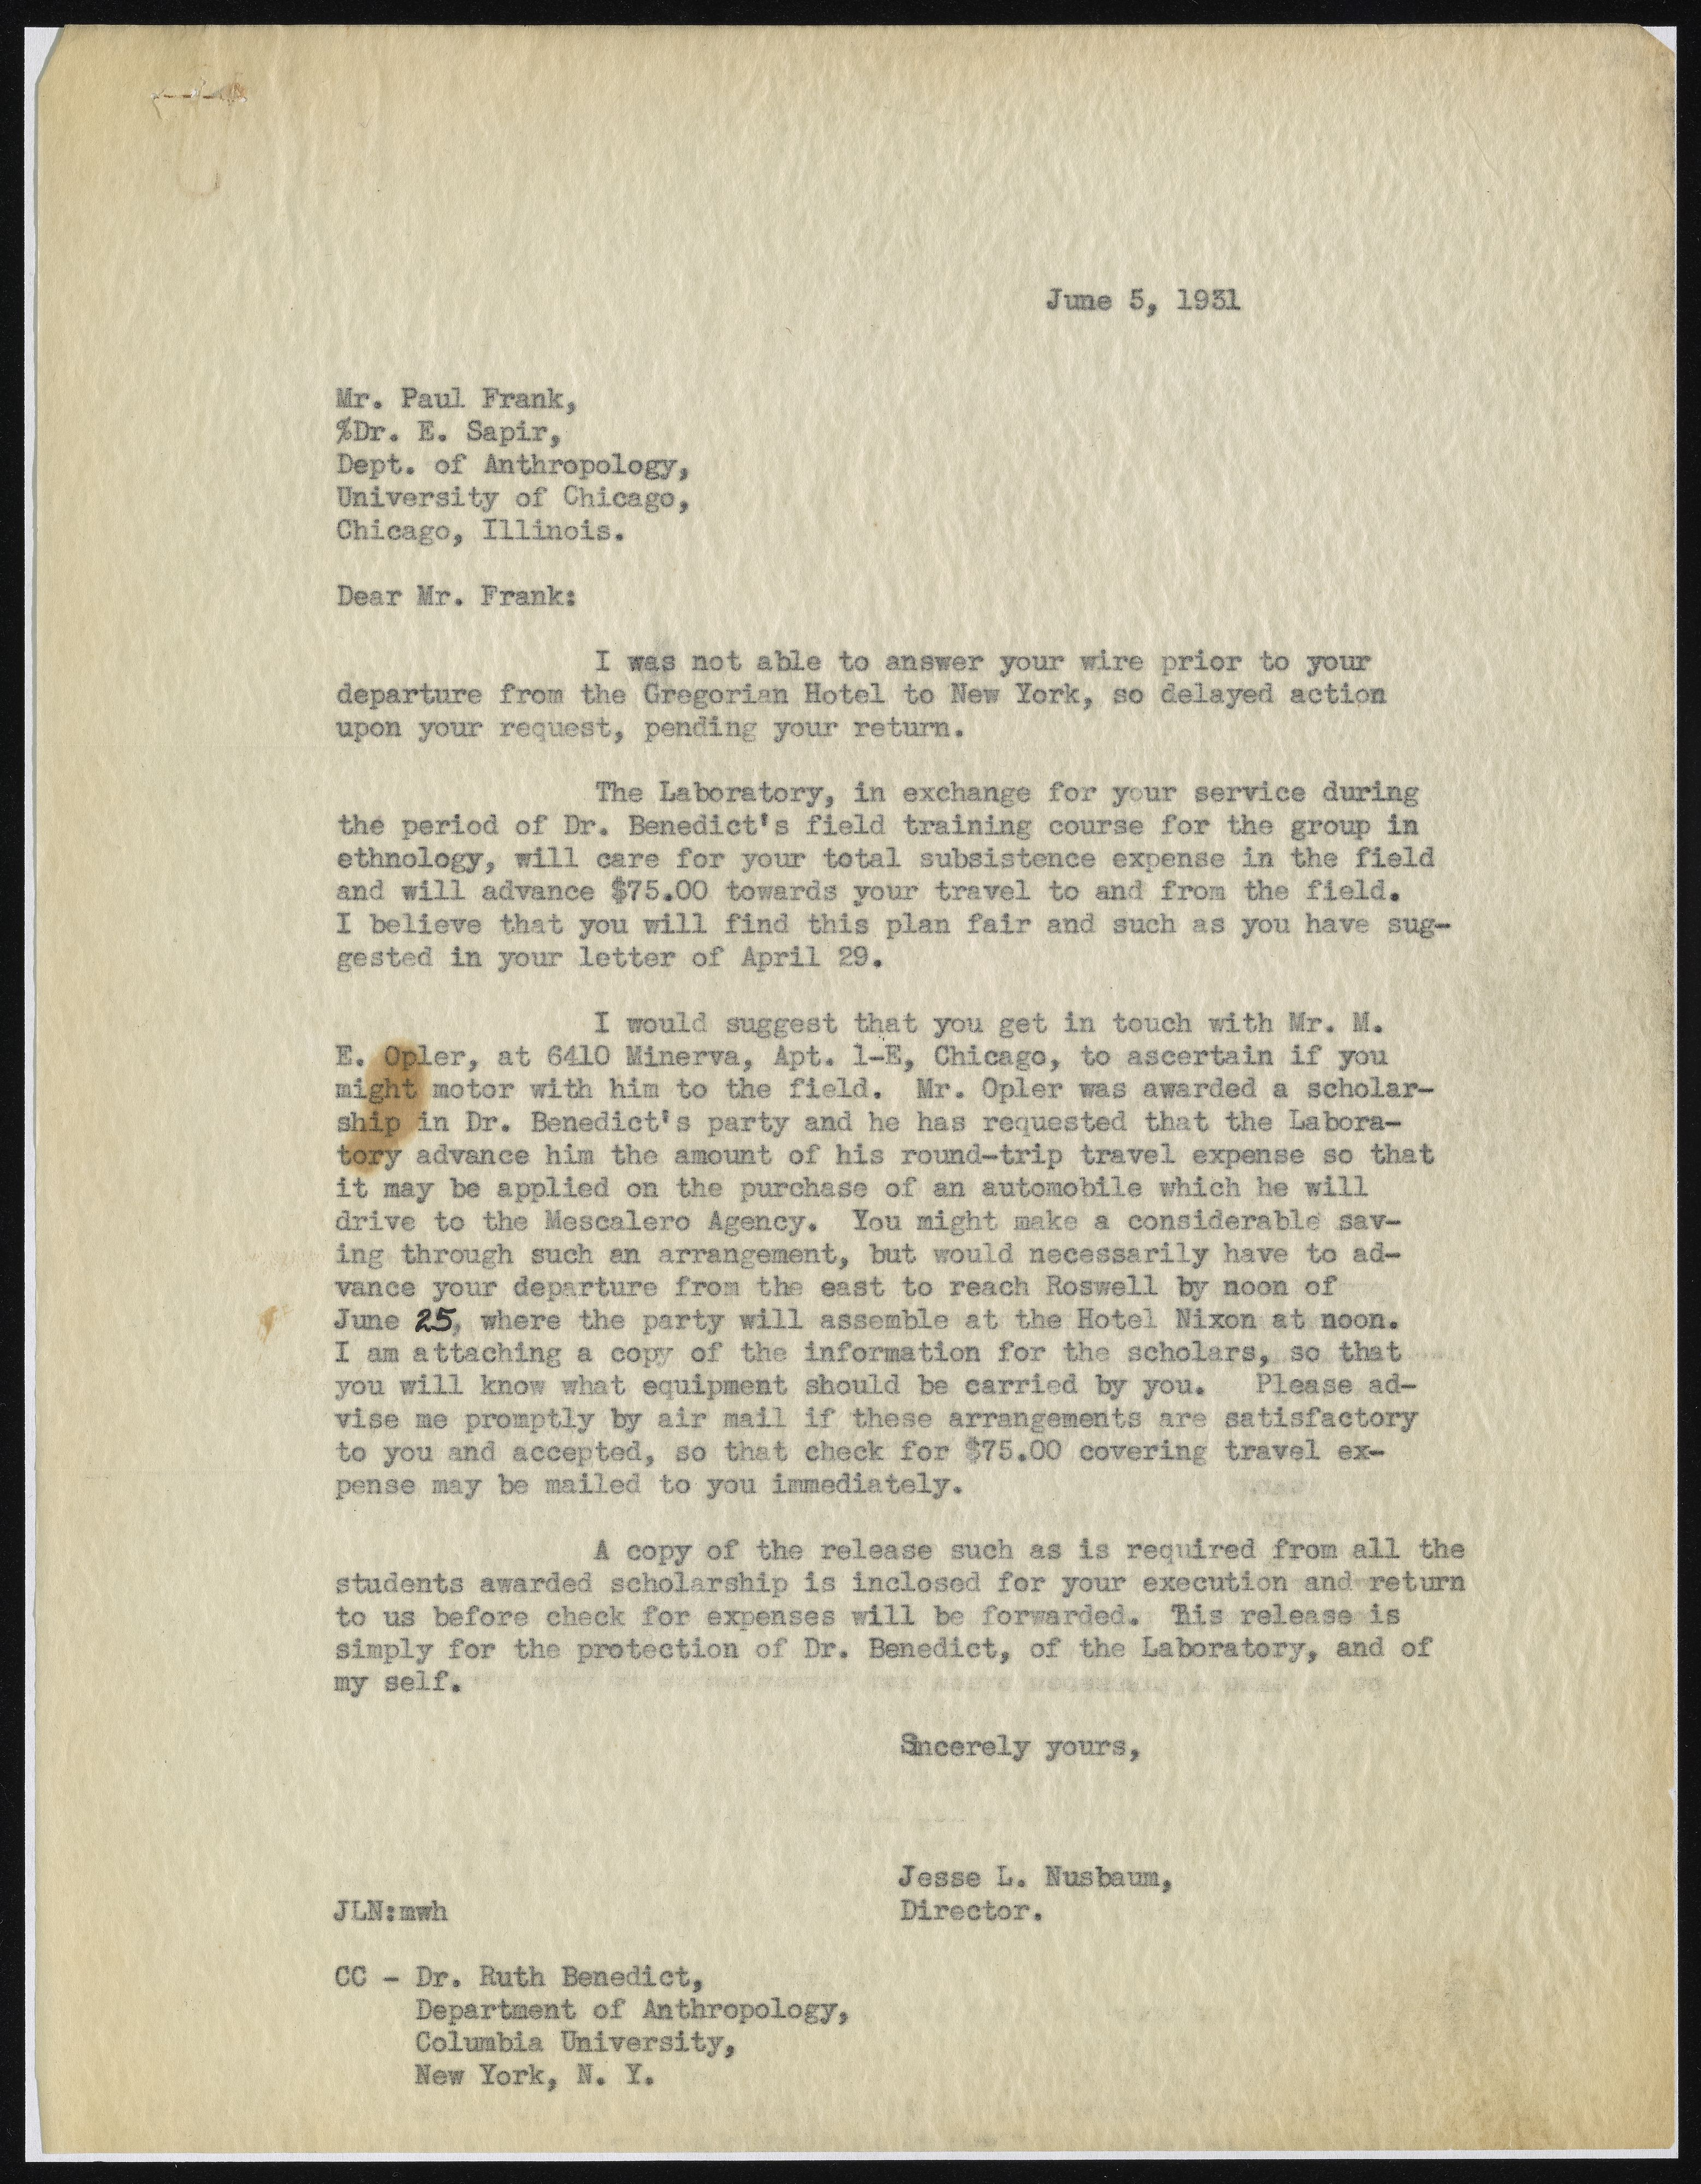 Letter from Jesse Nusbaum to Paul Frank, June 5, 1931 | Alexander